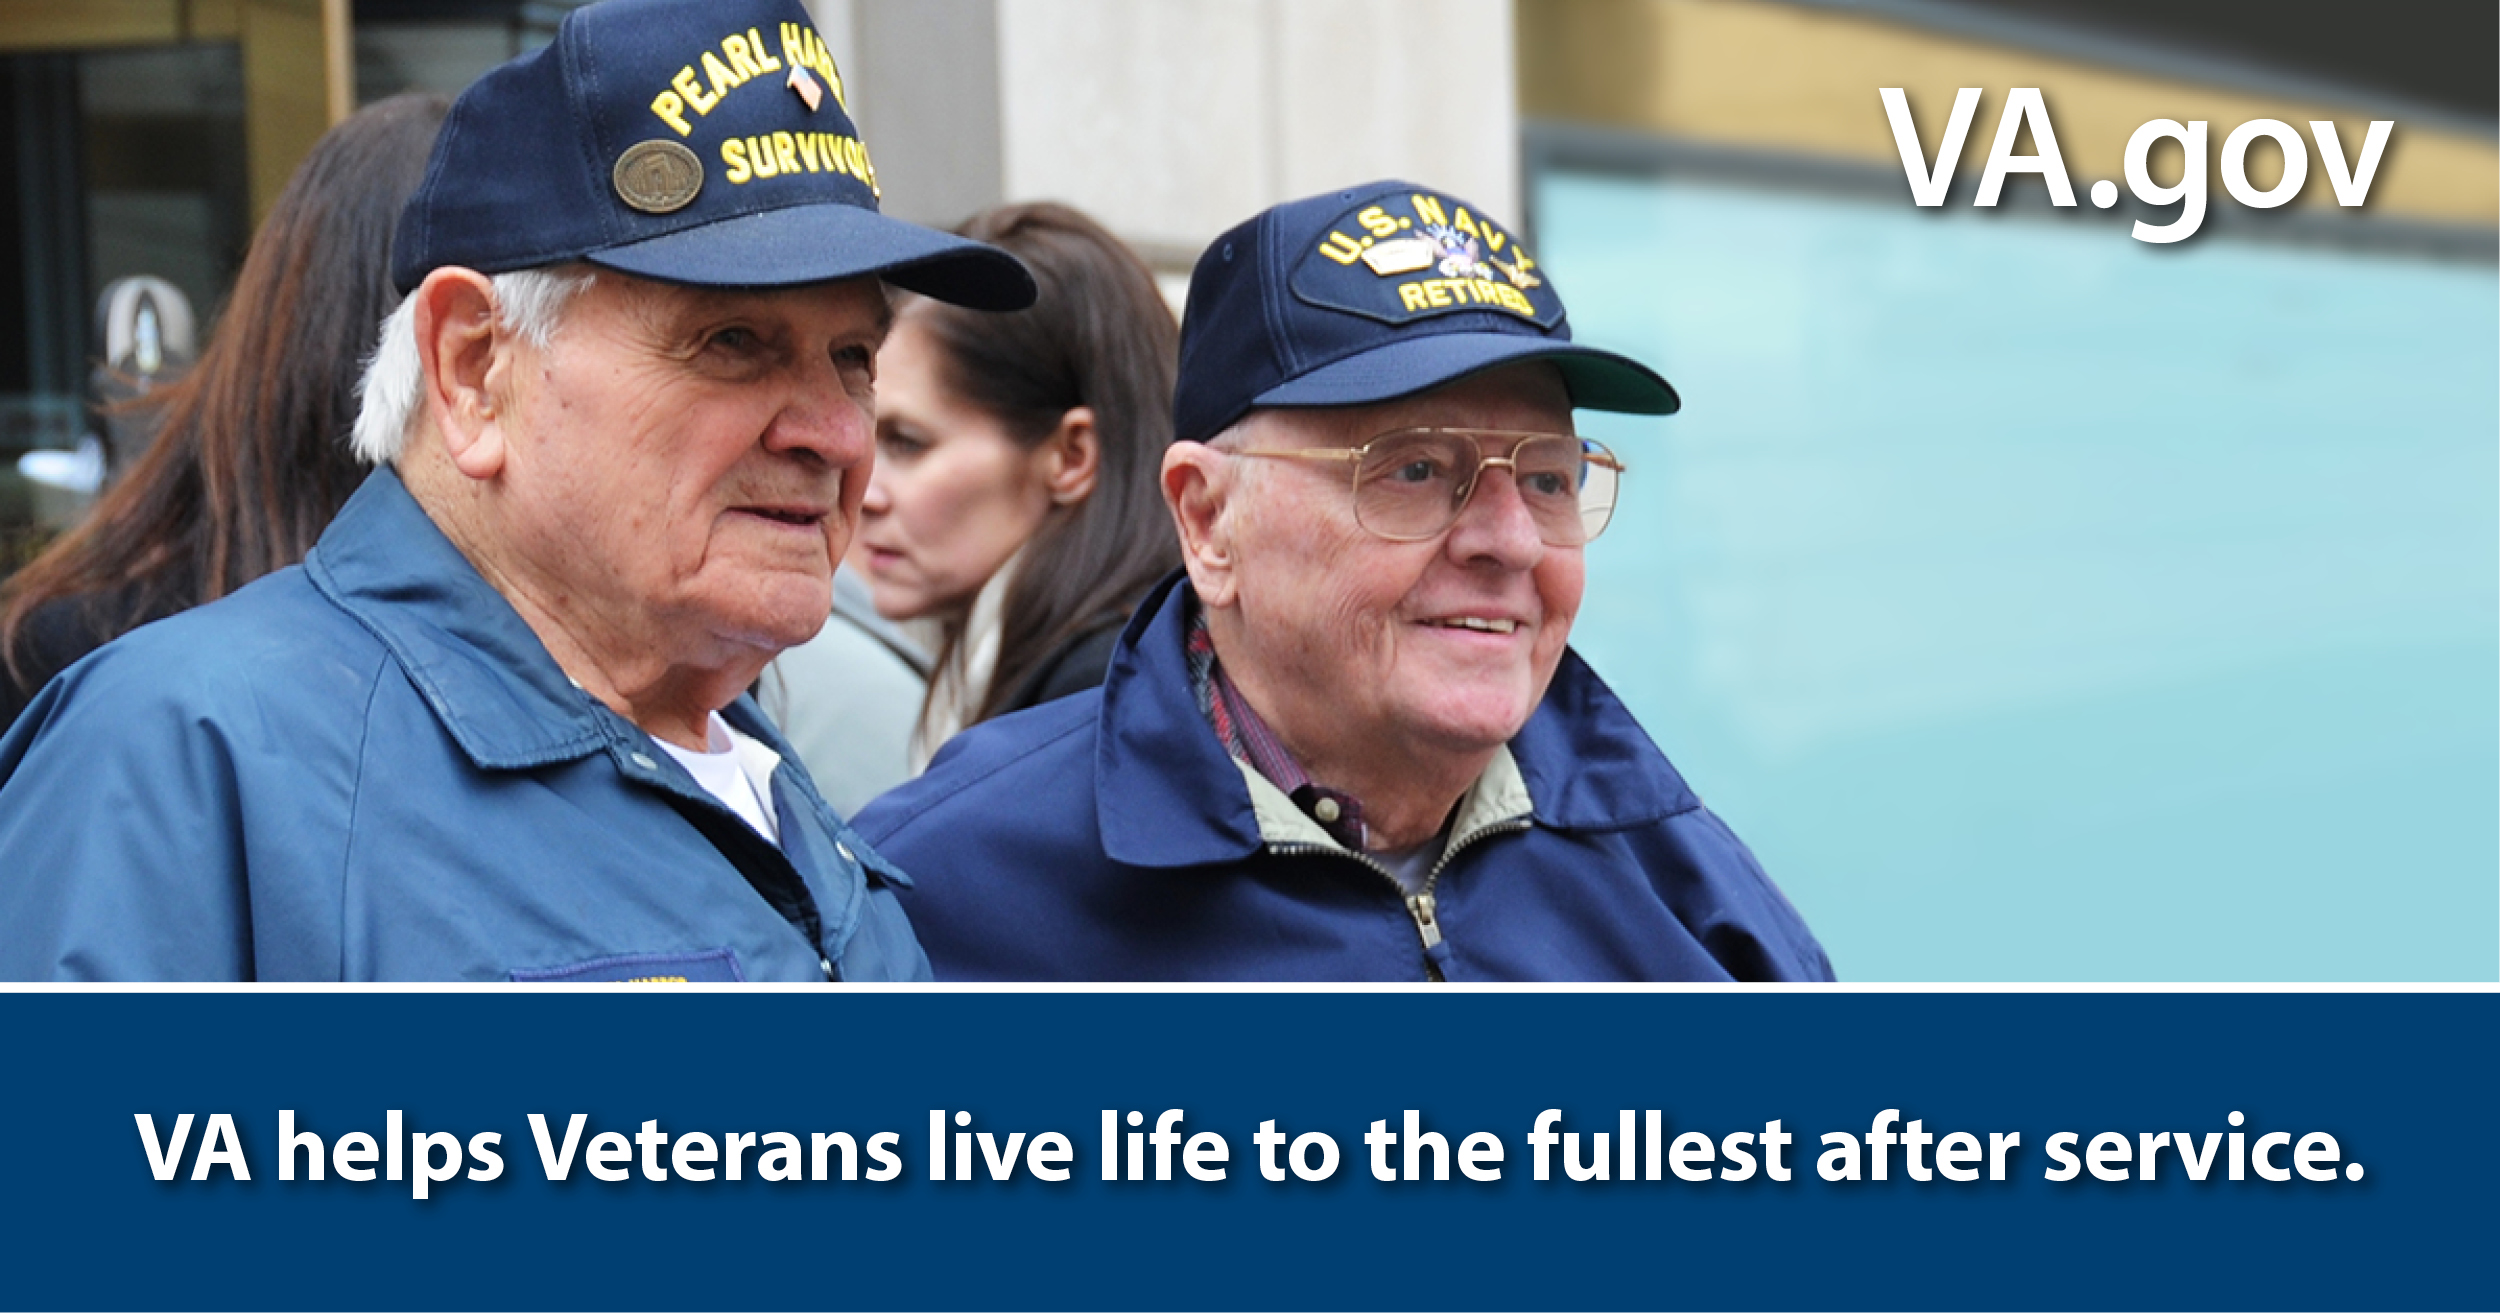 VA helps Veterans live life after service to the fullest.